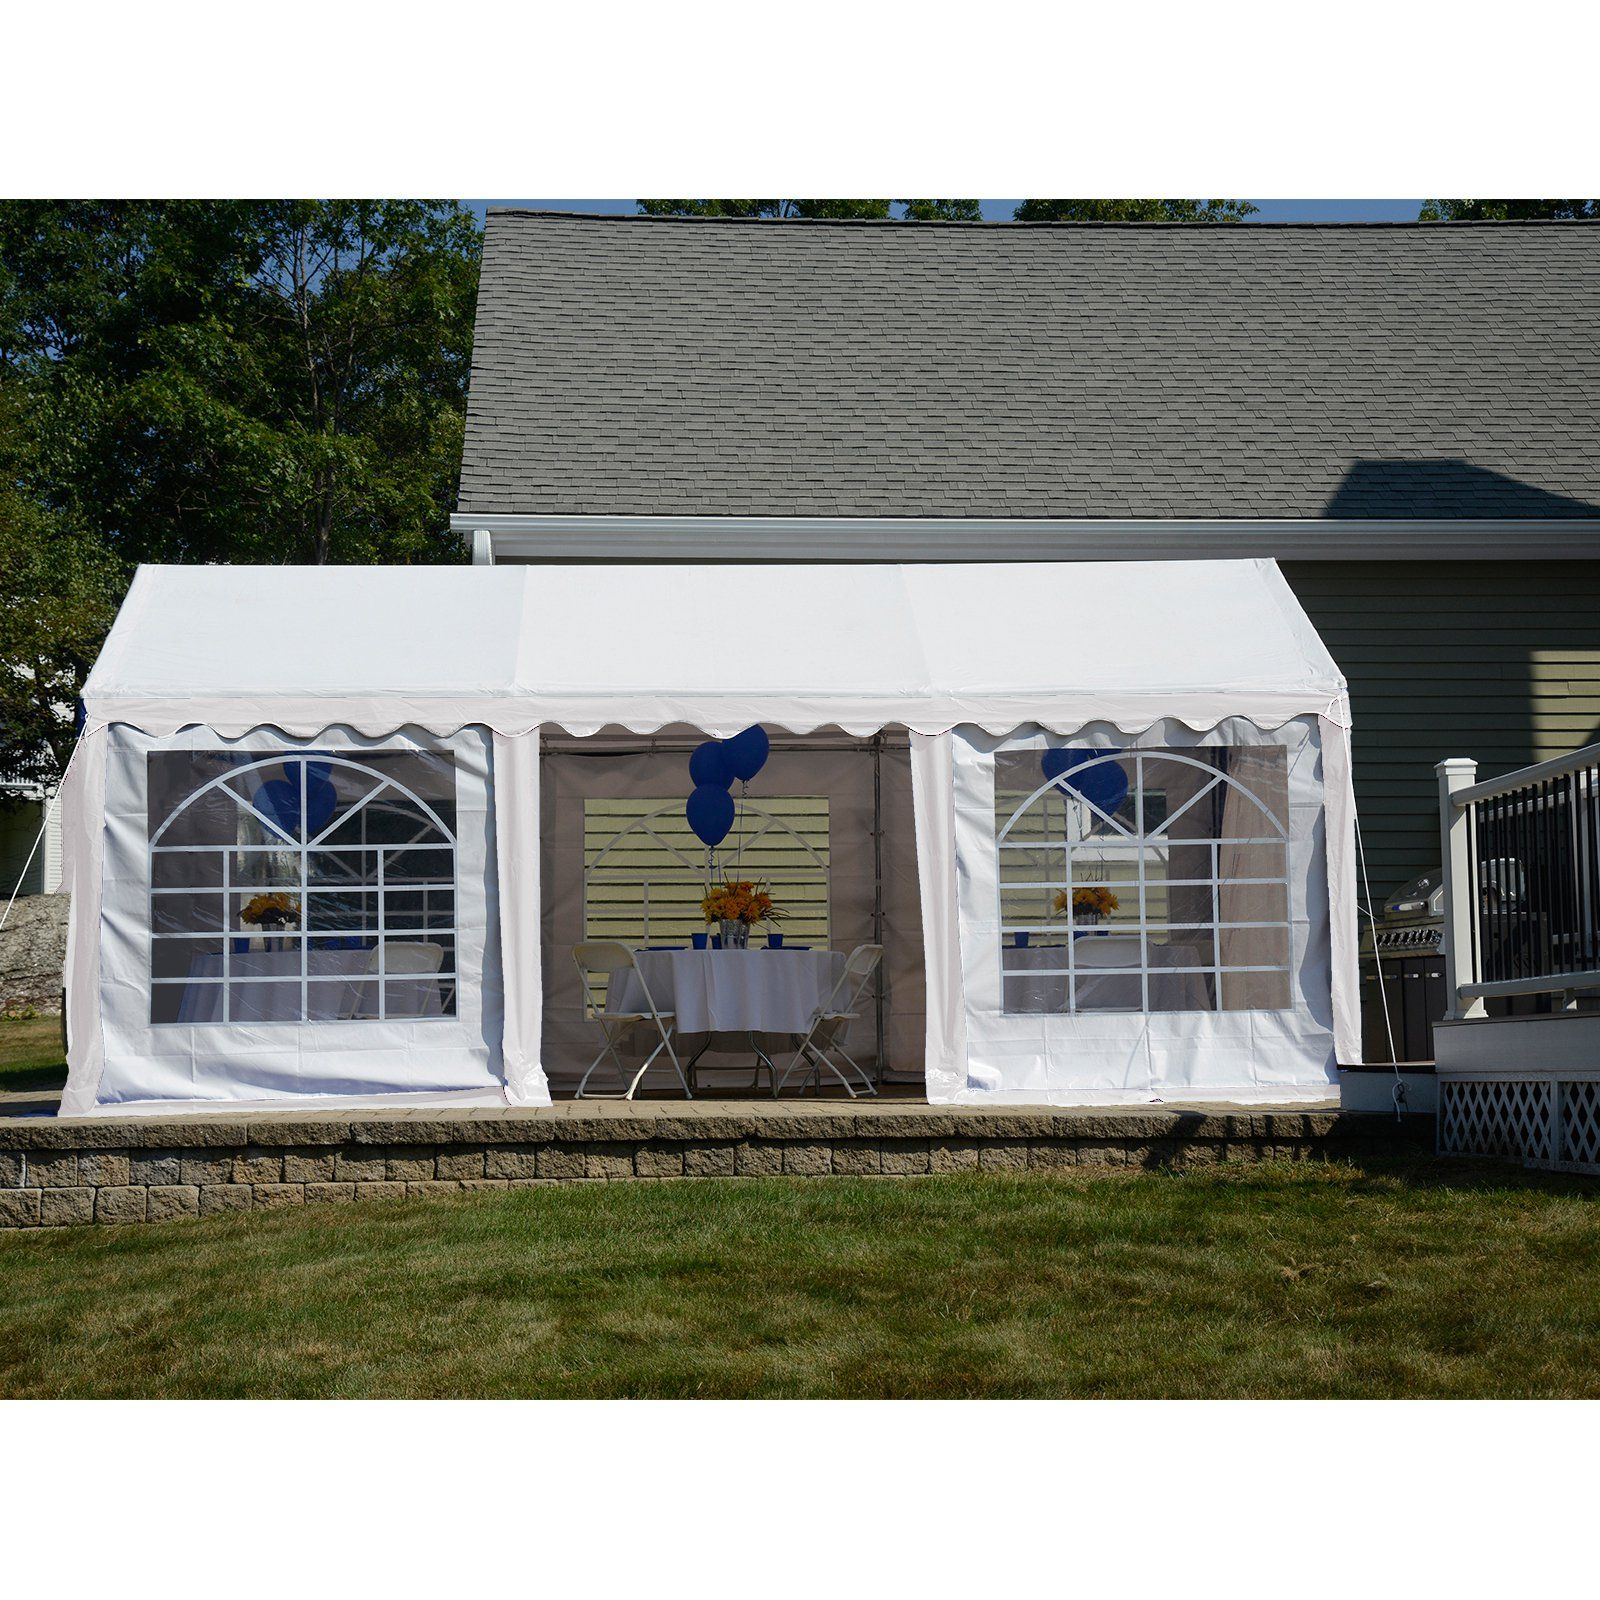 ShelterLogic 10 x 20 ft. Canopy & Enclosure Kit White